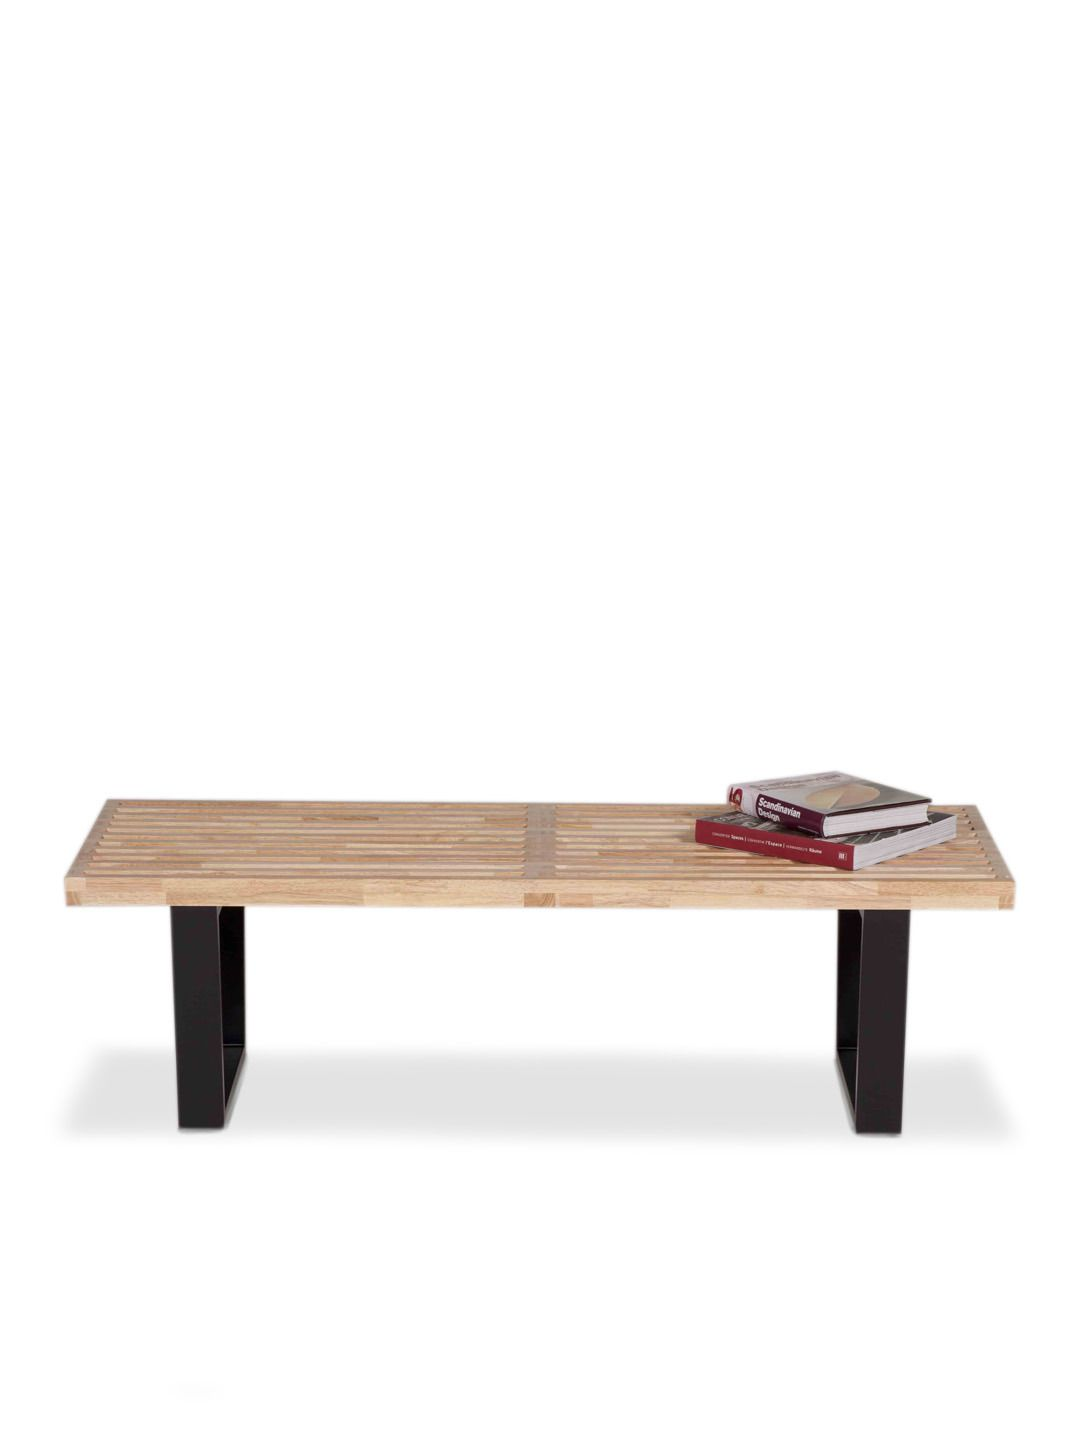 Slatted Bench Natural (4 ft) by Pangea Home at Gilt | New home ...